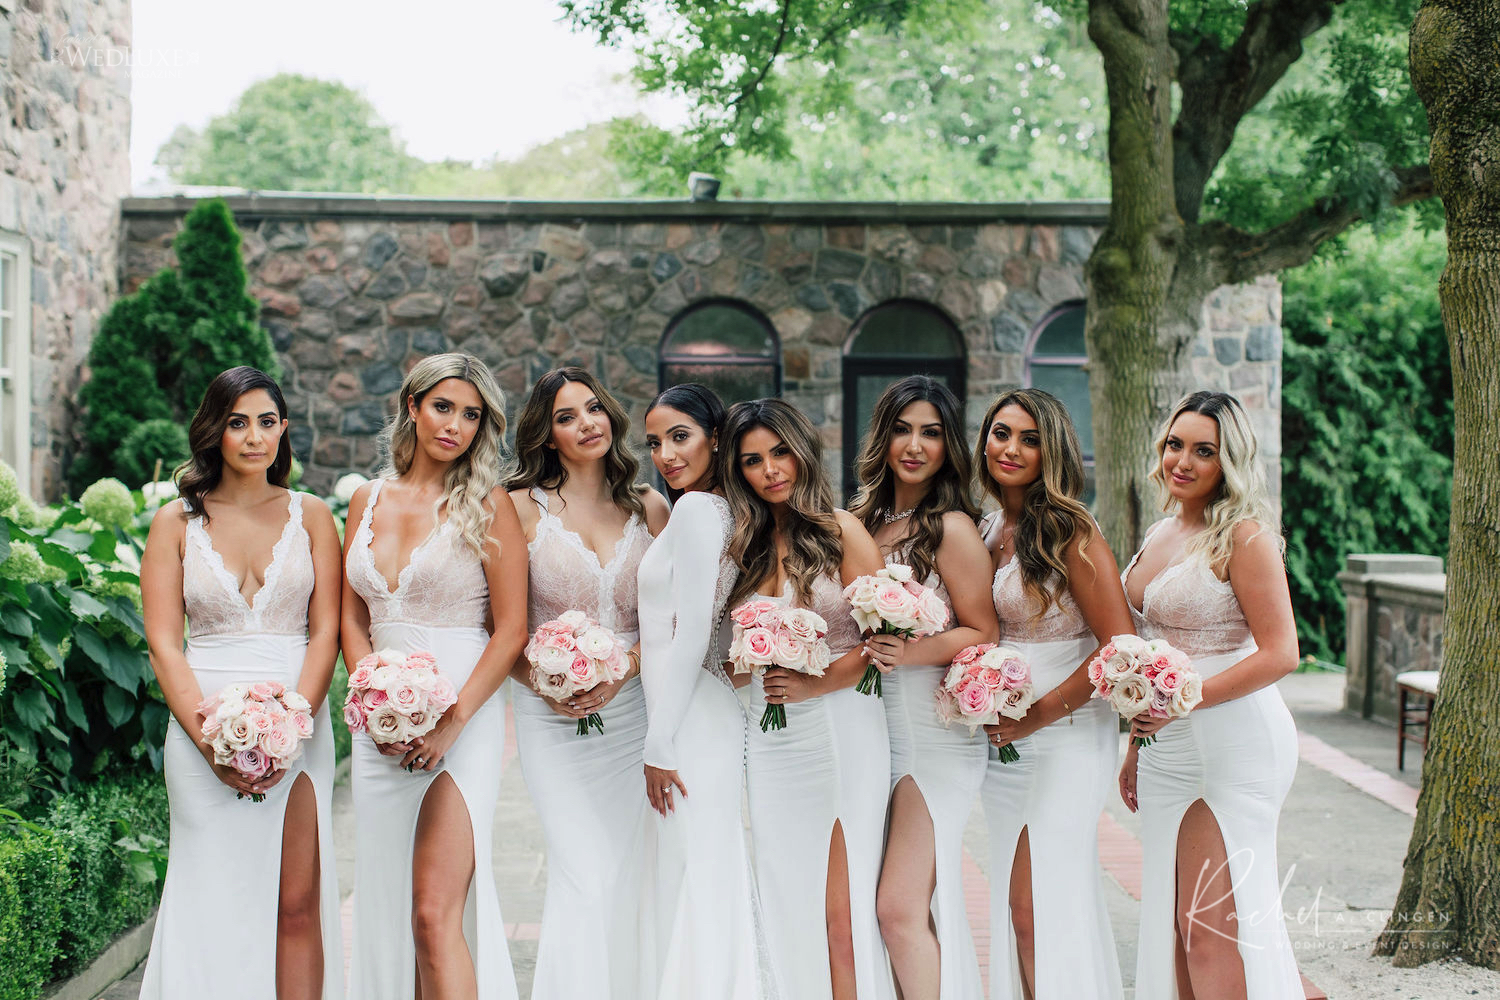 pink blush bridesmaids dresses